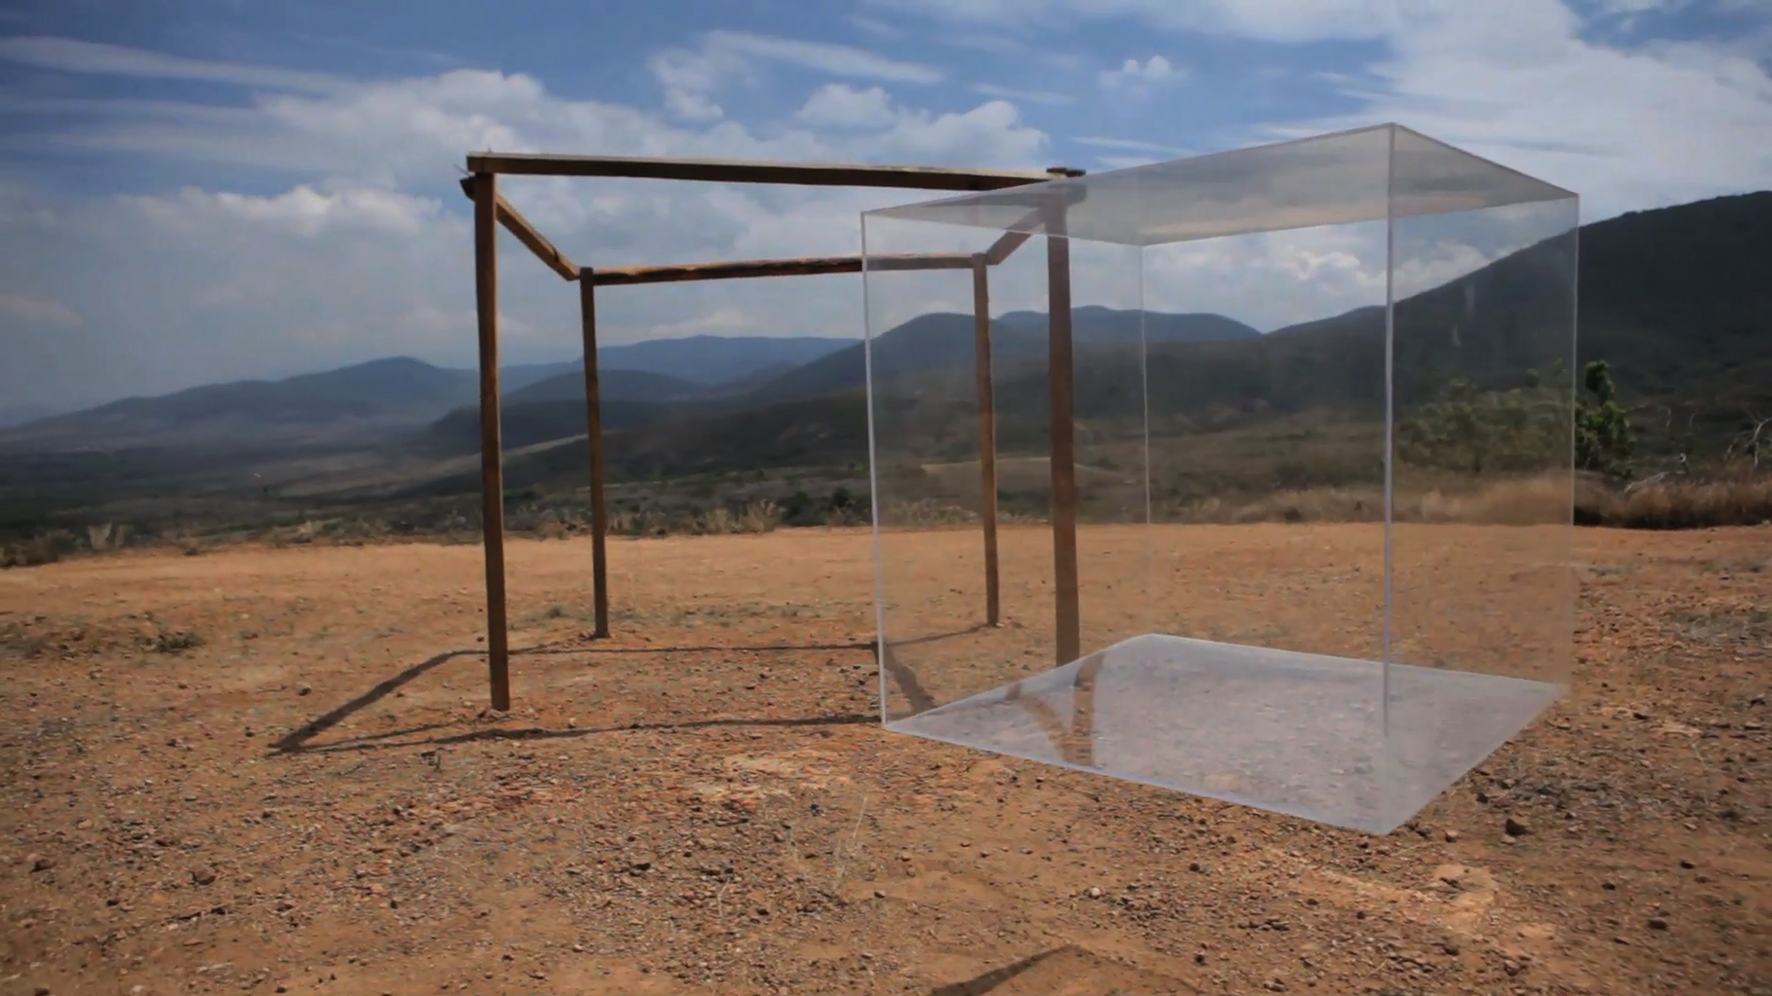 Miguel angel rios, piedras blancas, 2014, white balls, rolling, mexico, Argentina, endless, the ghost of modernity, flying cube